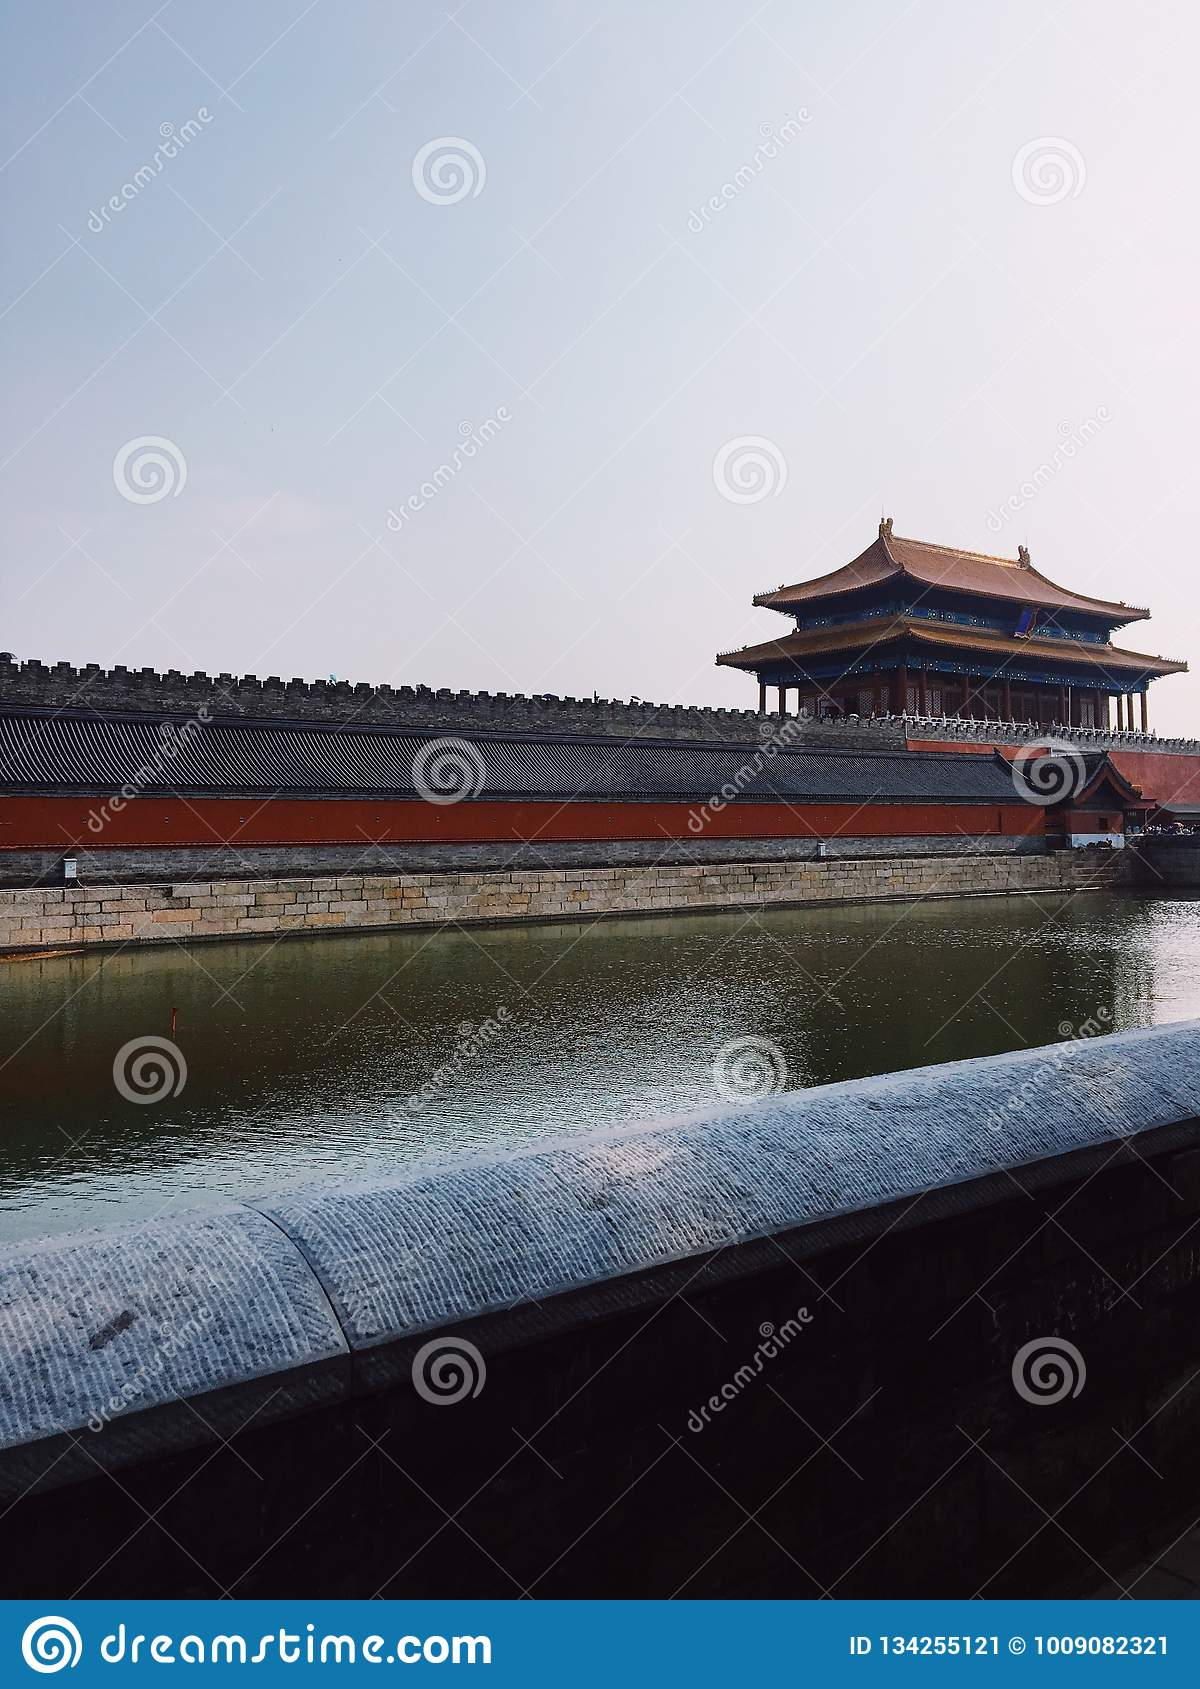 The wall and the river stock image  Image of vsco, long - 134255121